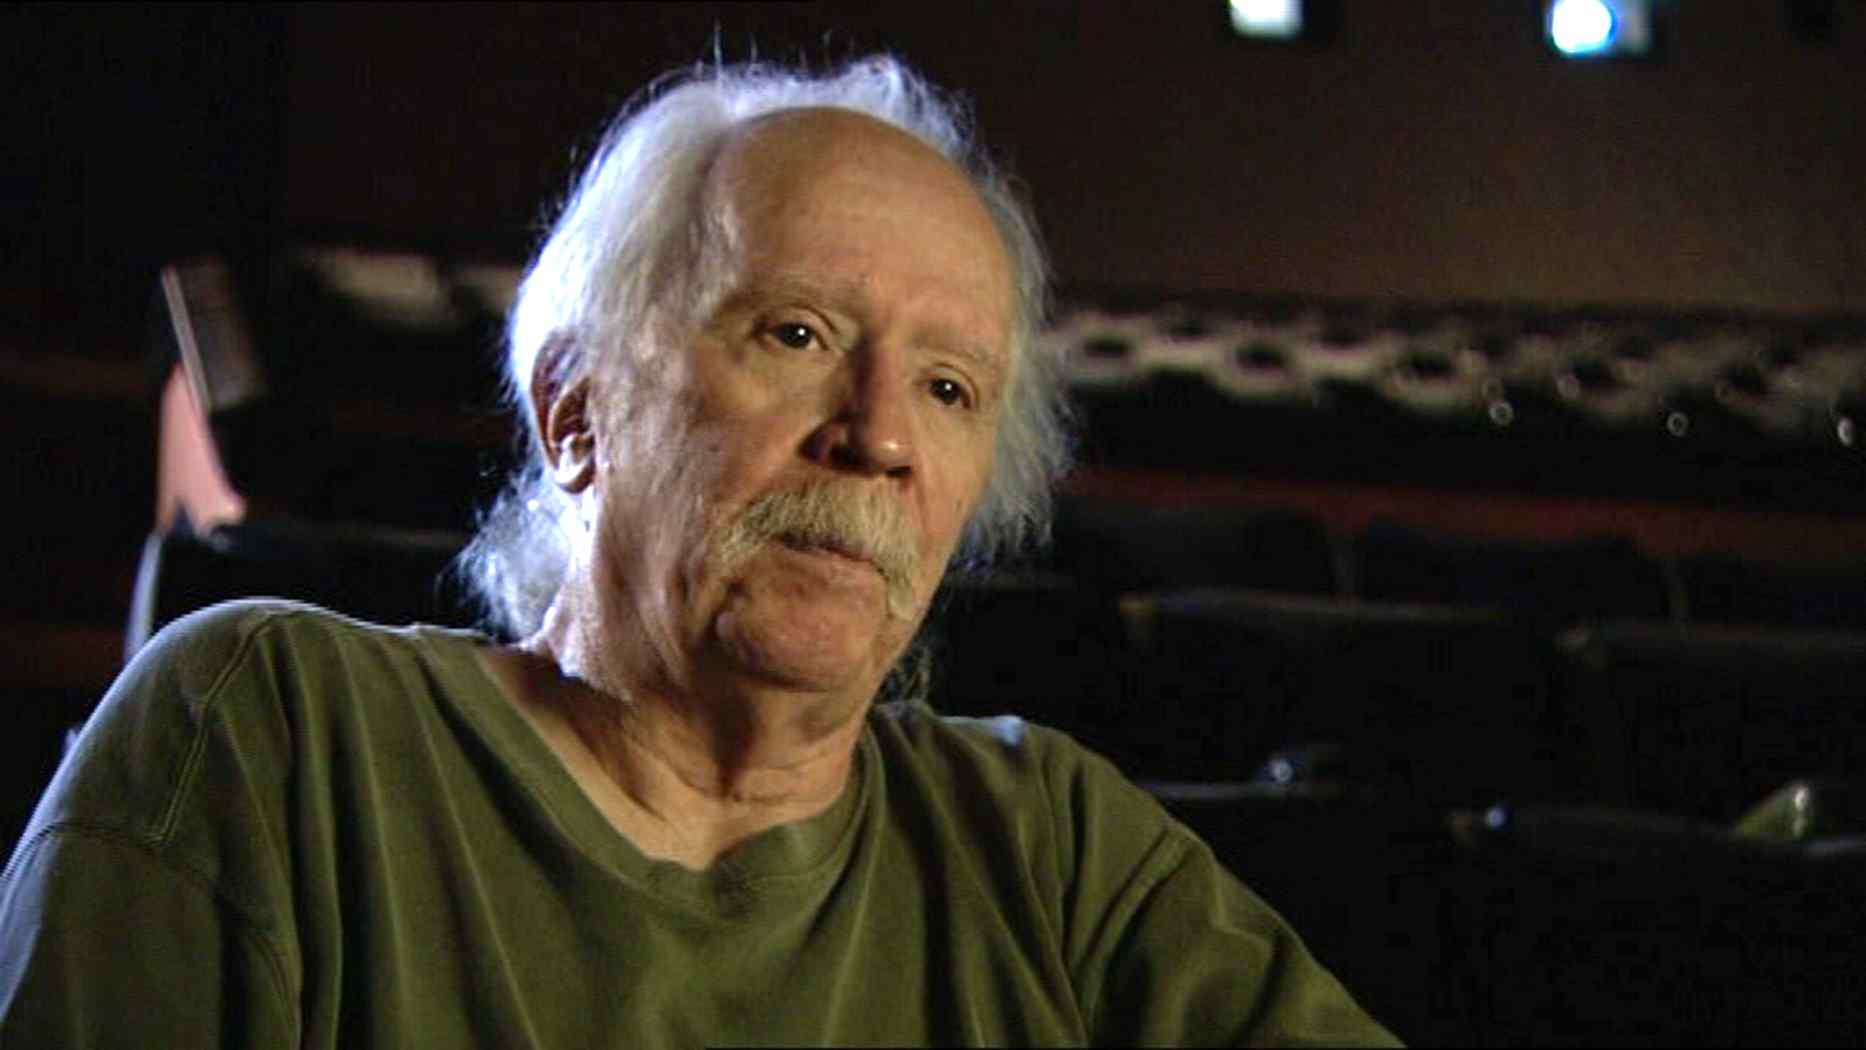 John Carpenter, director